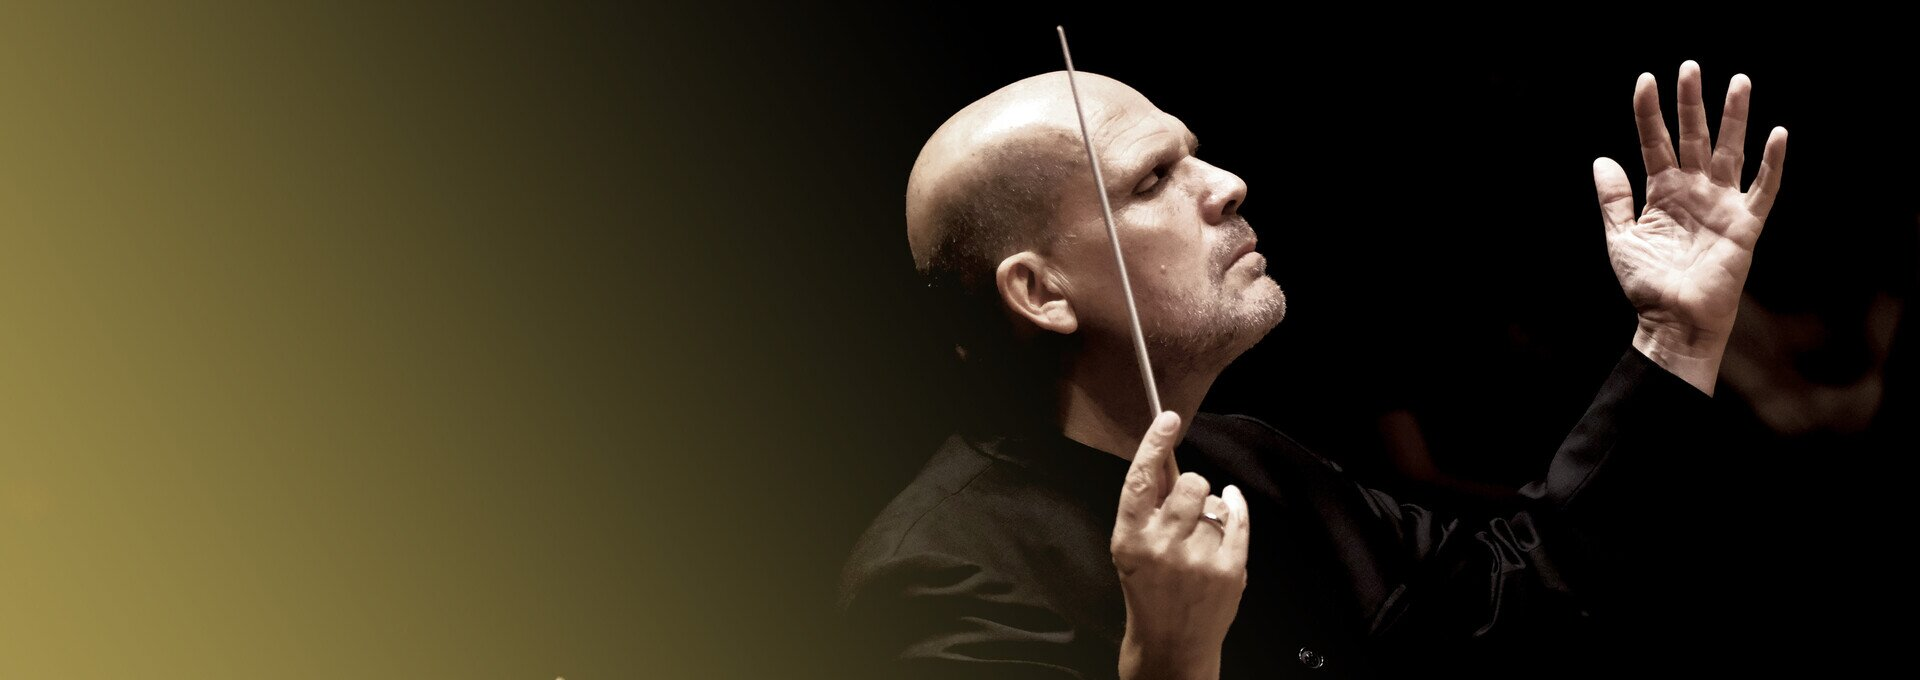 23 OCT 2020 (Fri) 8:00pmJAAP | BEETHOVEN 7 & 8